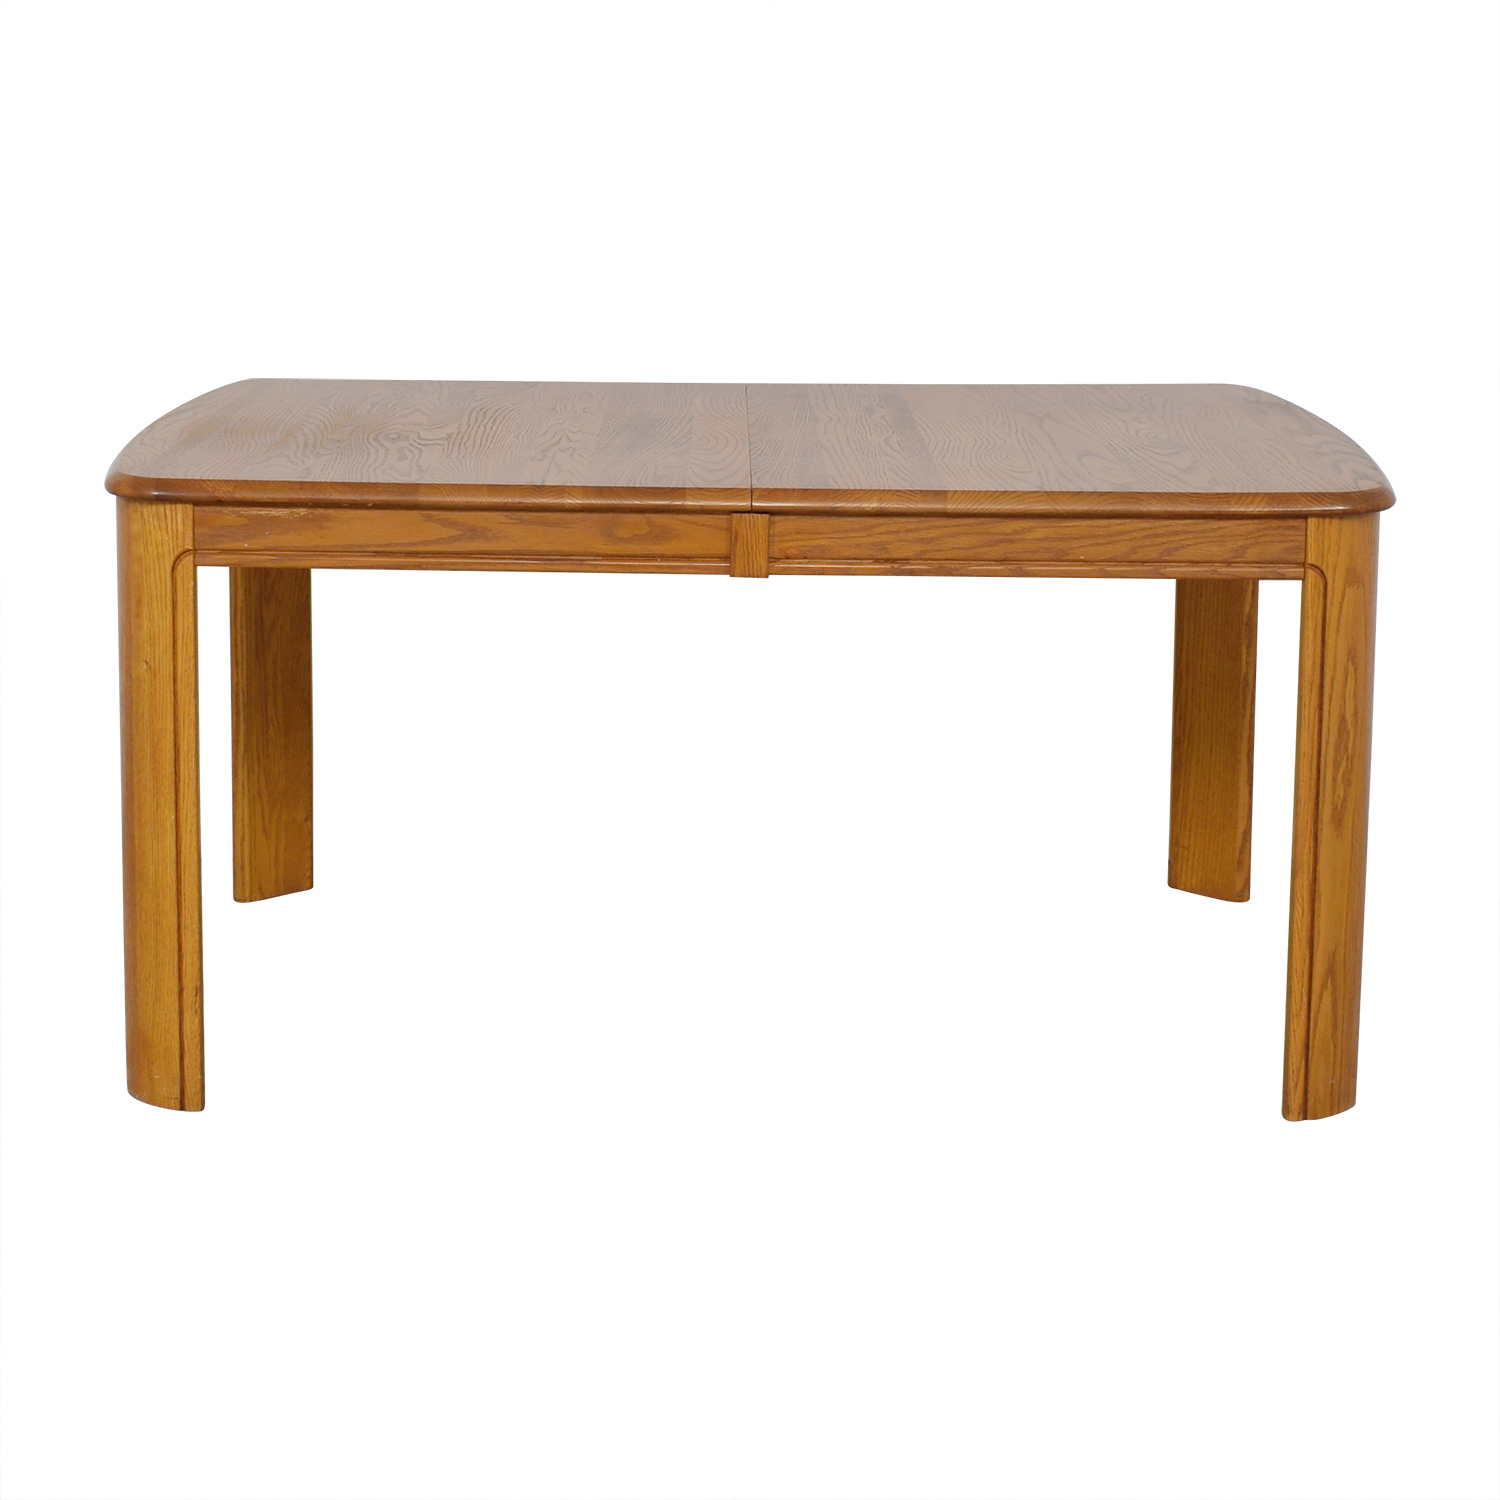 Keller Keller Classic Style Dining Table nyc